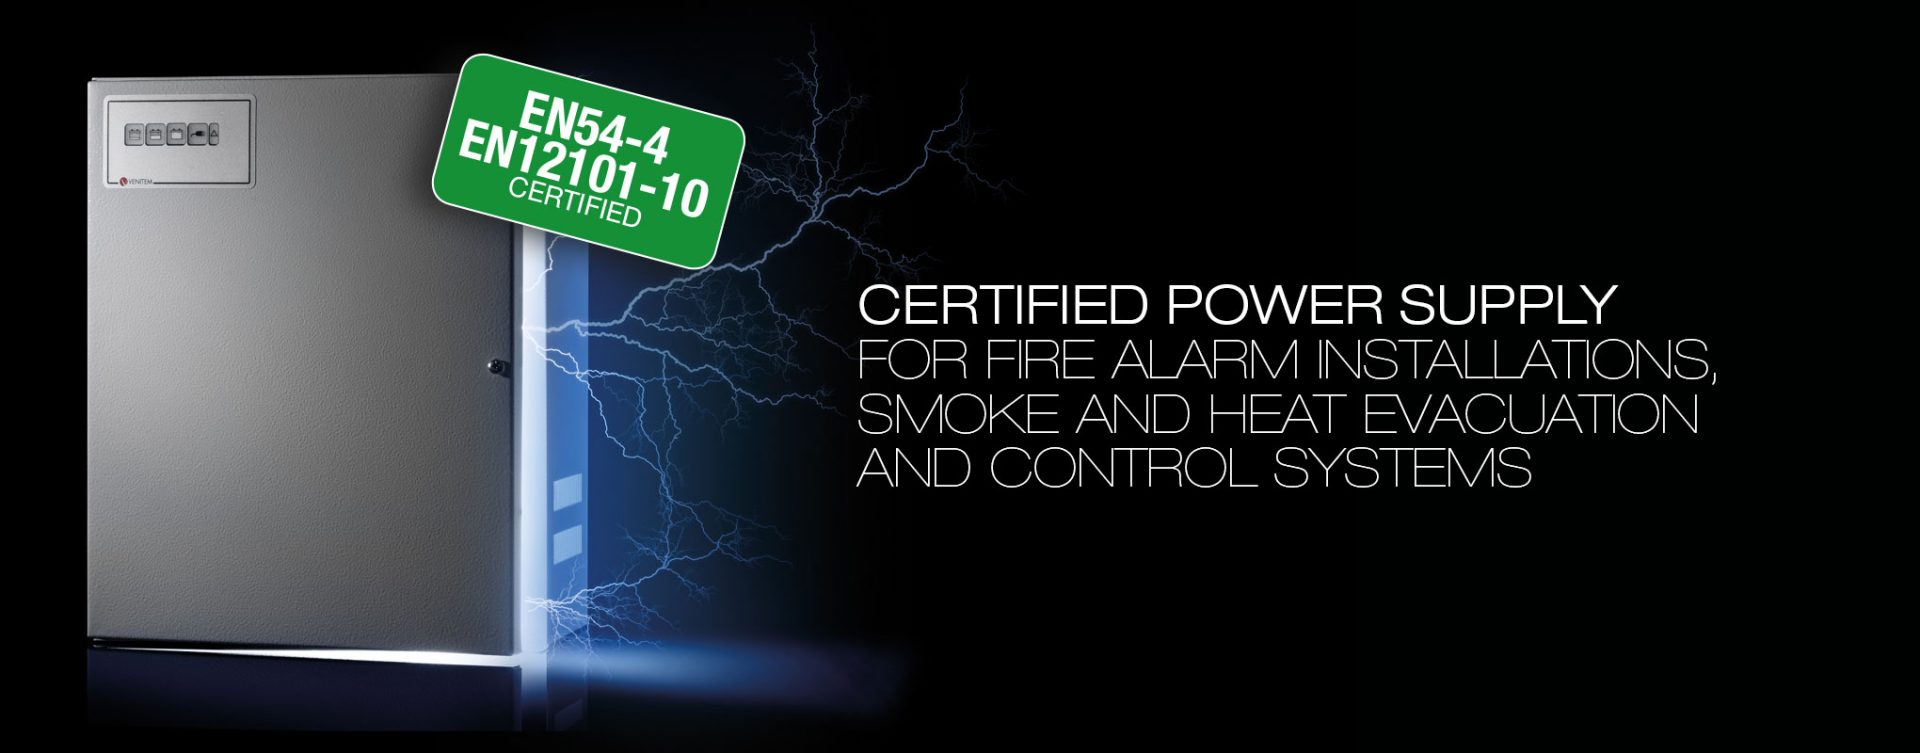 Fire alarm installations, smoke and heat evacuation and control systems